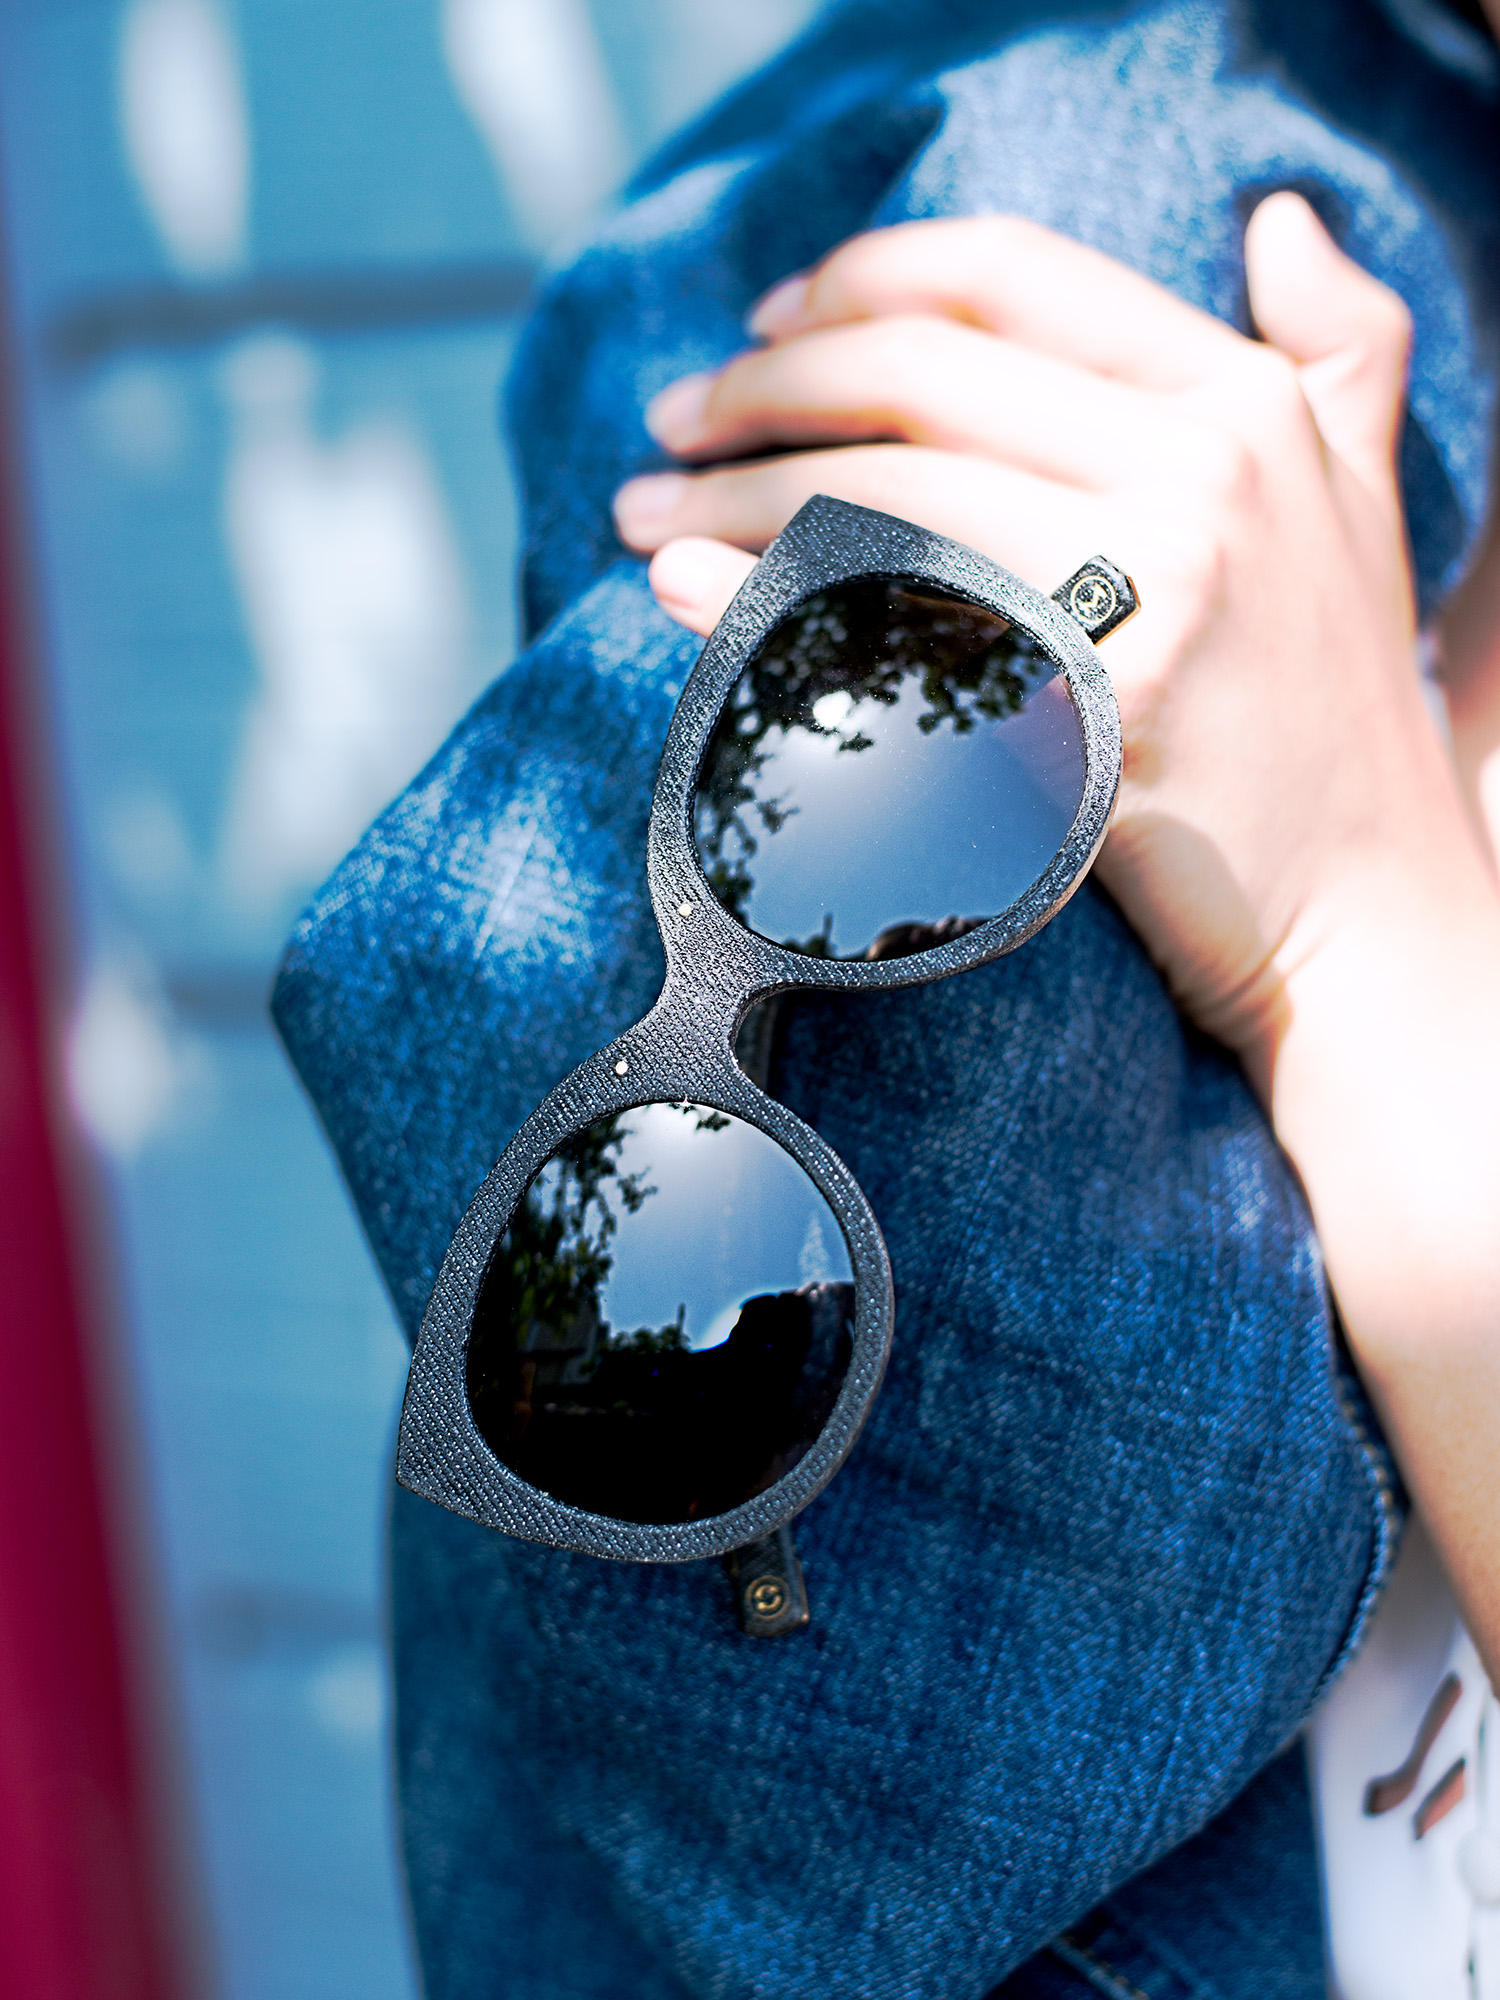 Work for  Mosevic  sunglasses. Glasses handmade from 100% recycled denim.  Halley  in black.